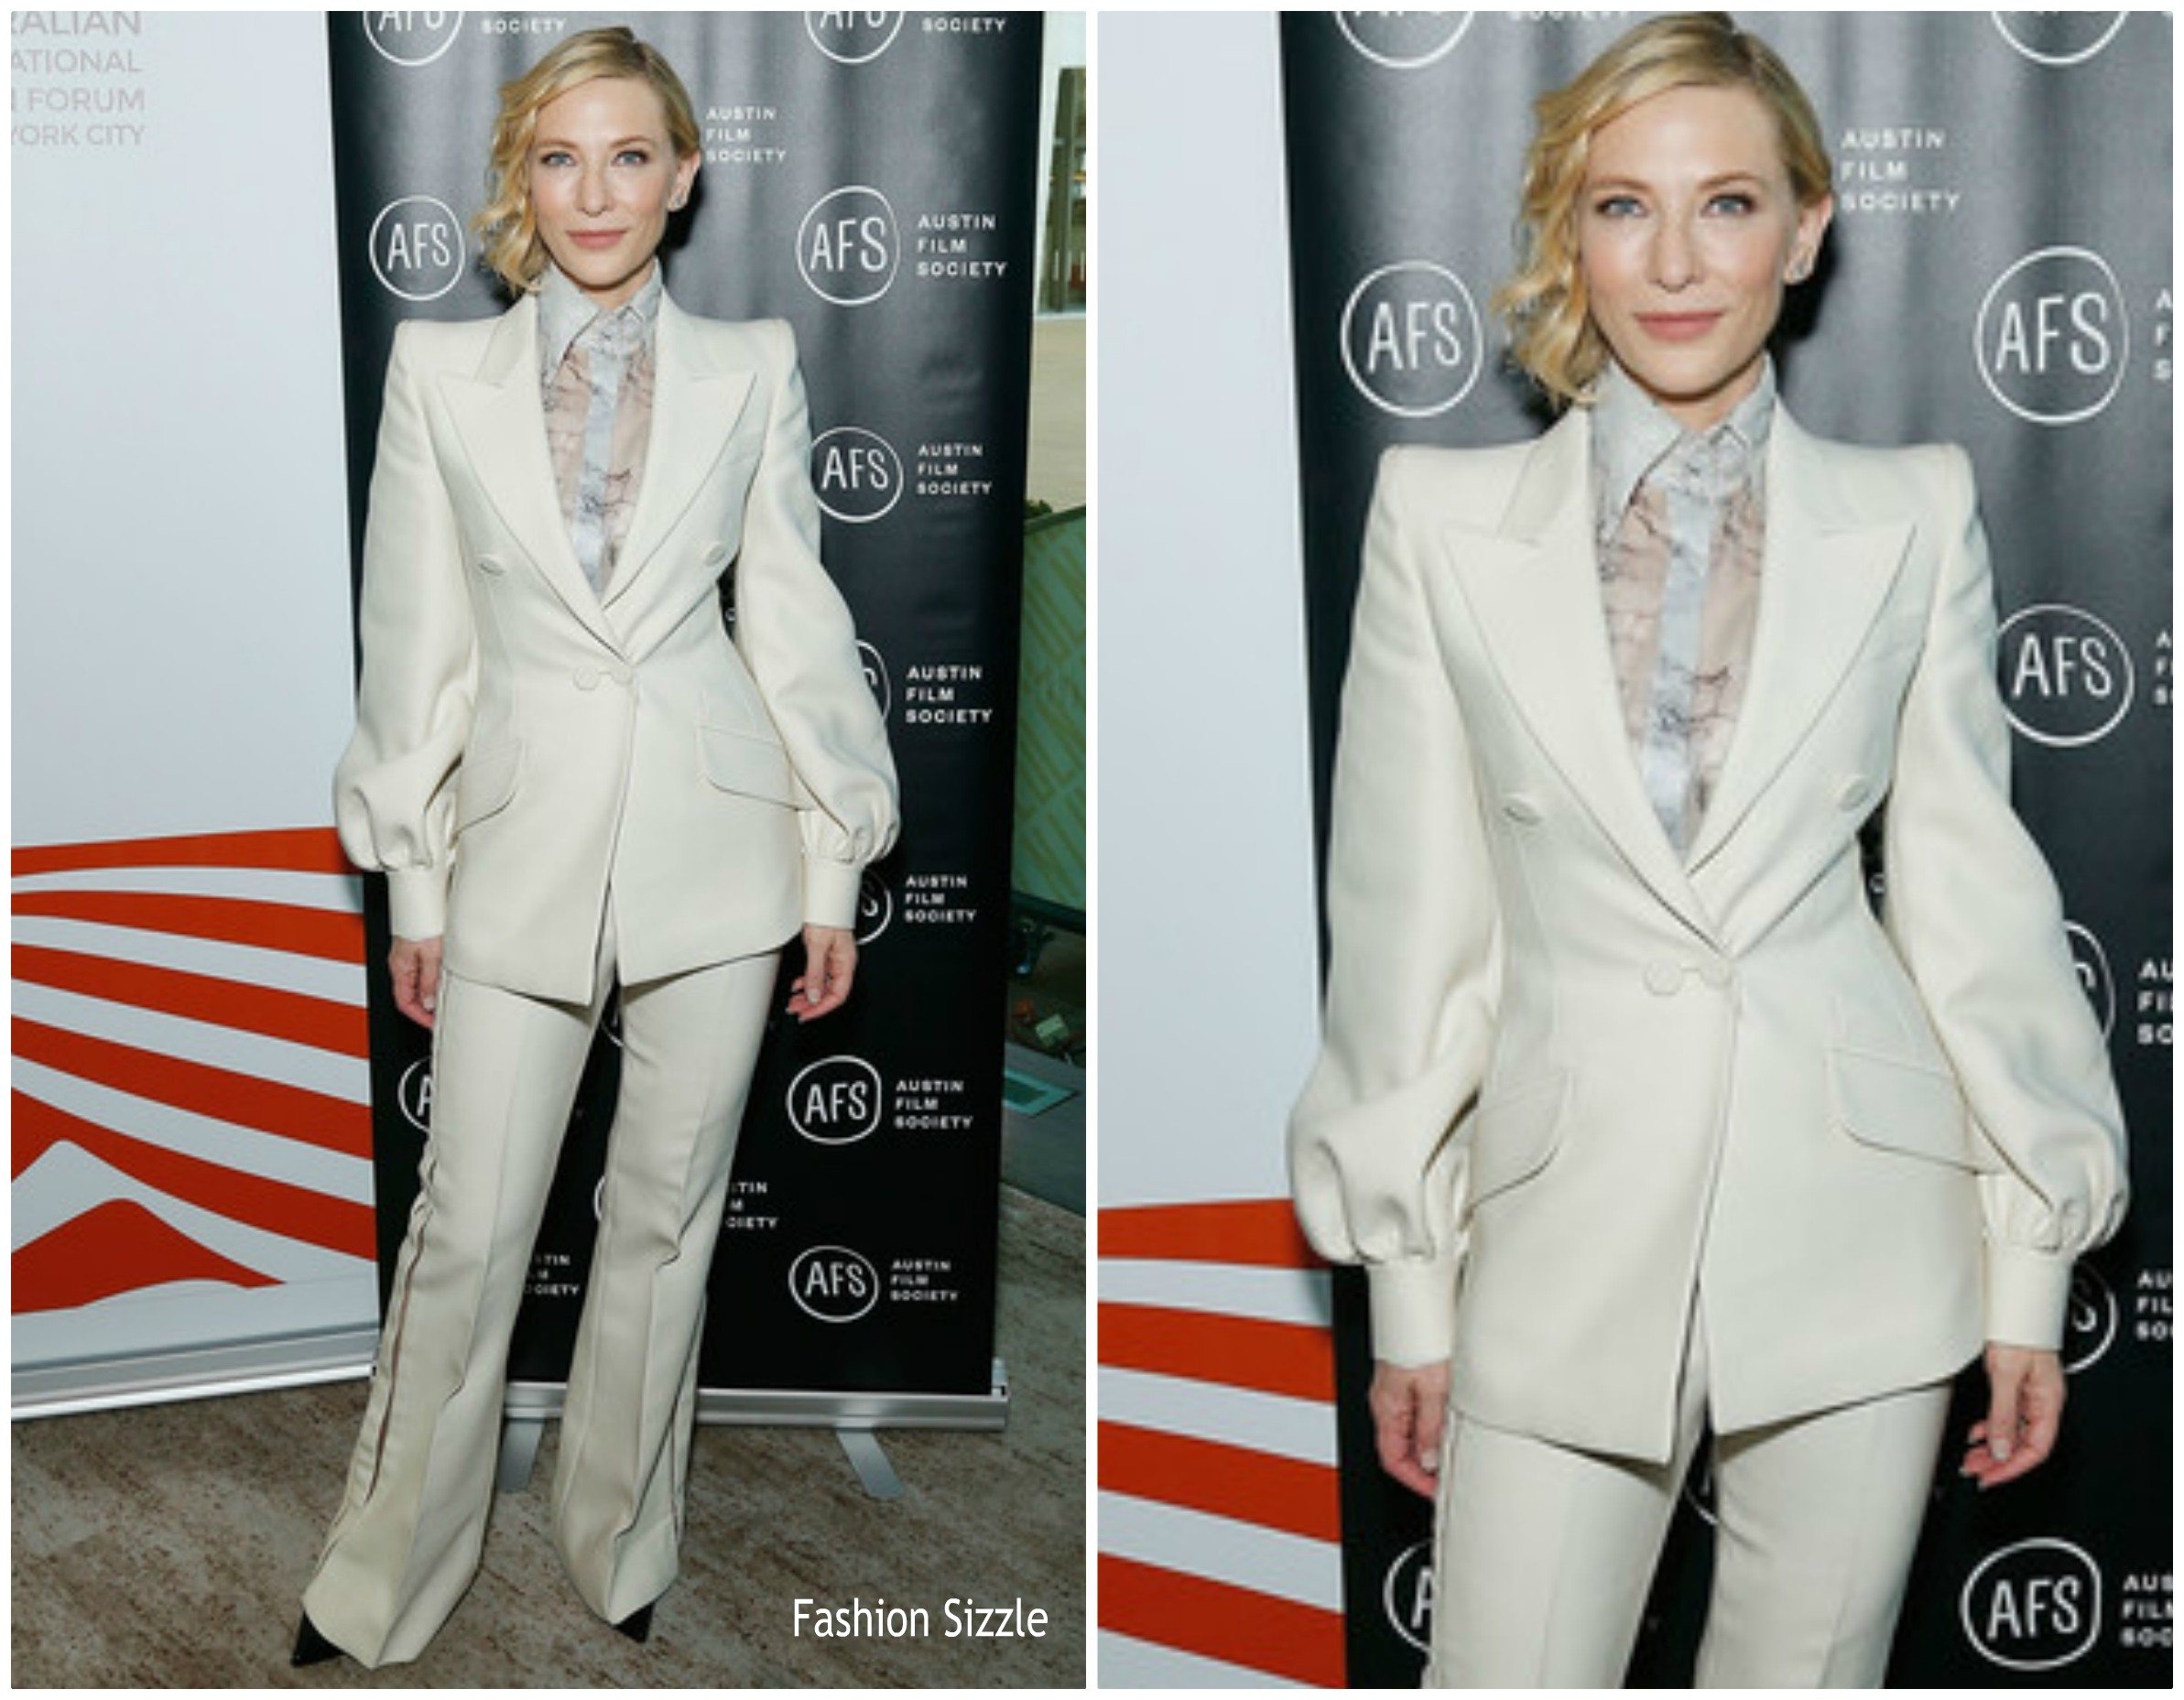 cate-blanchett-in-fendi-suit-whered-you-go-bernadette-dinner-in-new-york